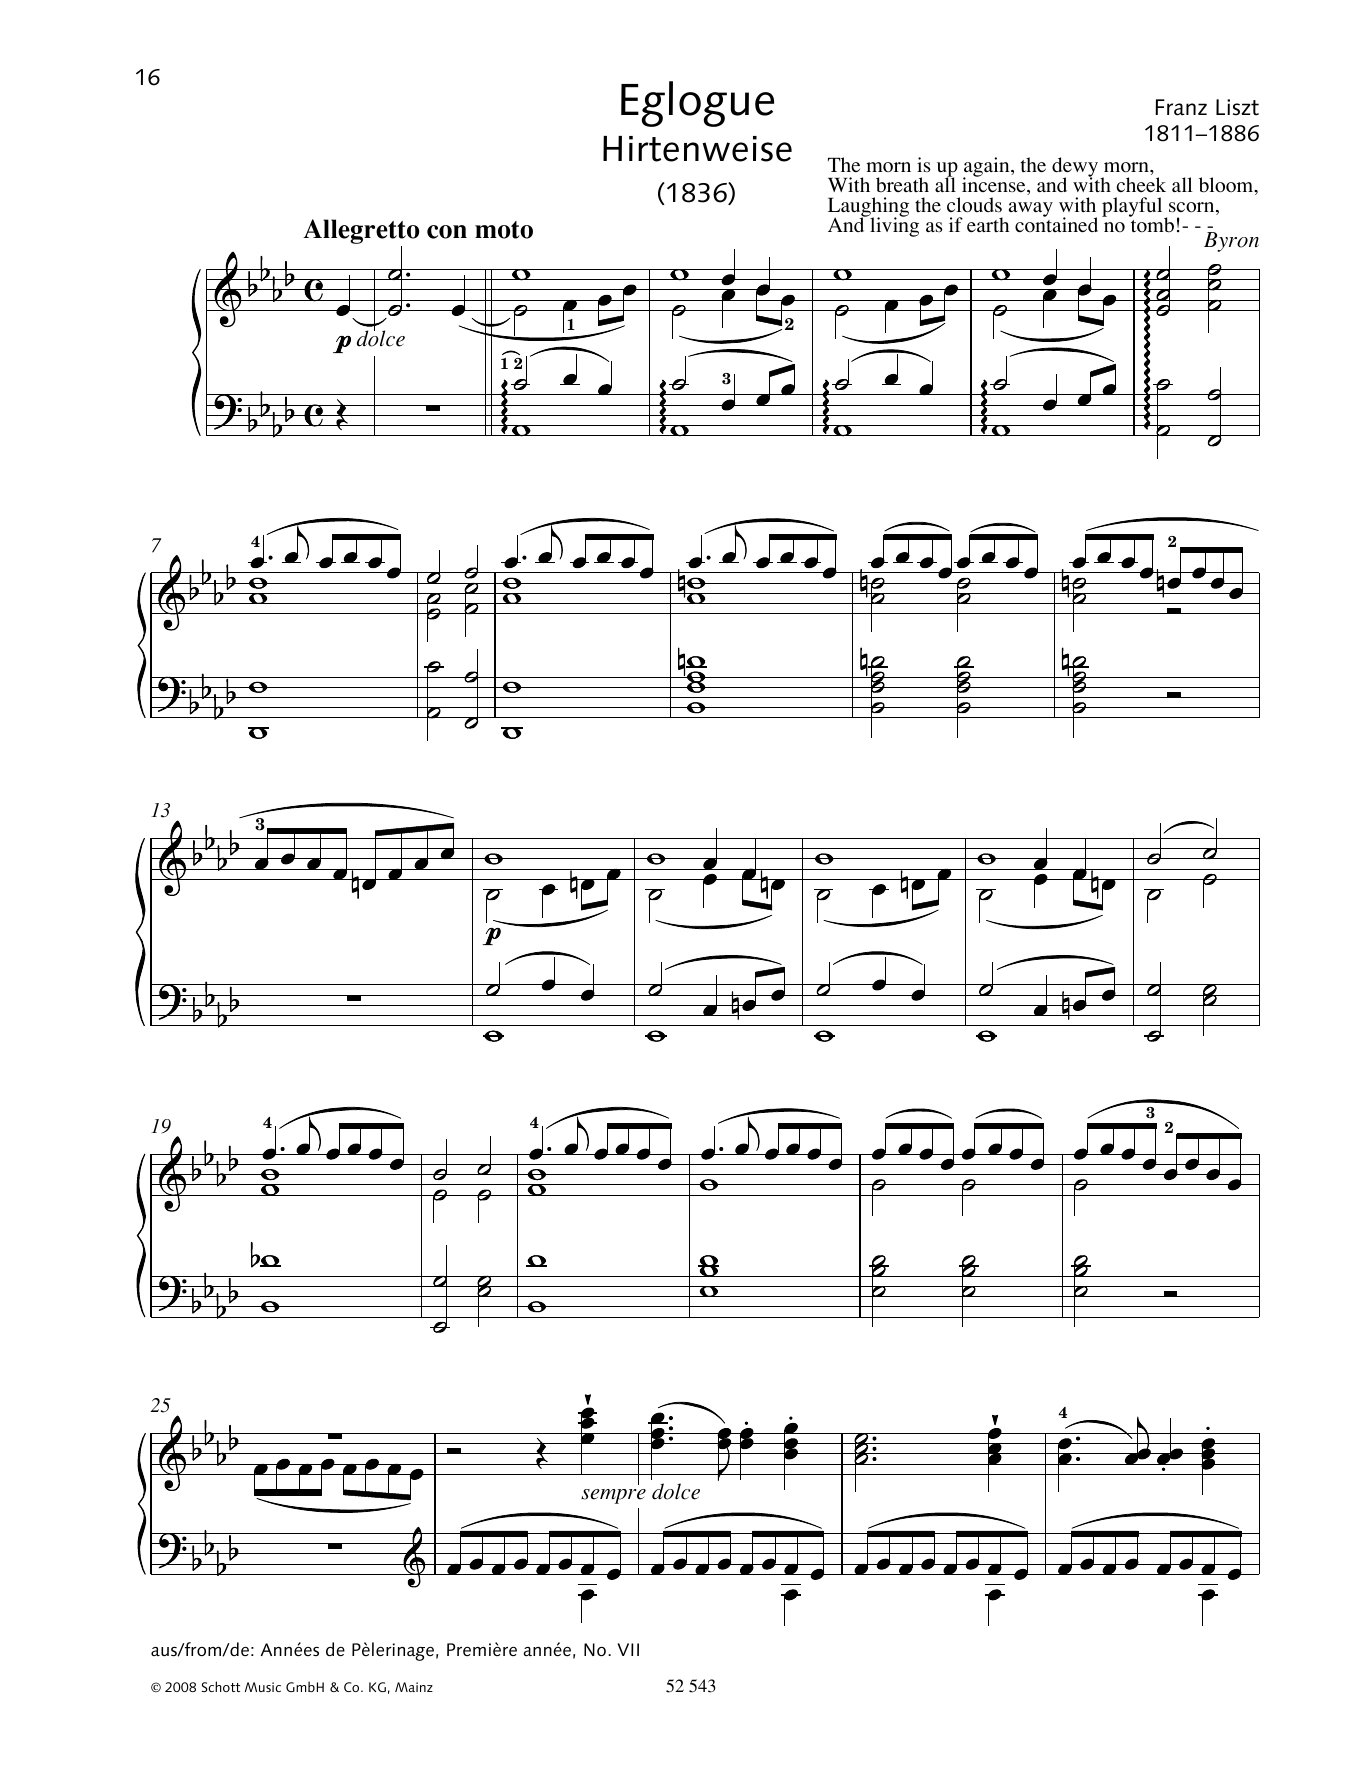 Franz Liszt Eglogue (Hirtenweise) sheet music preview music notes and score for Piano Solo including 4 page(s)